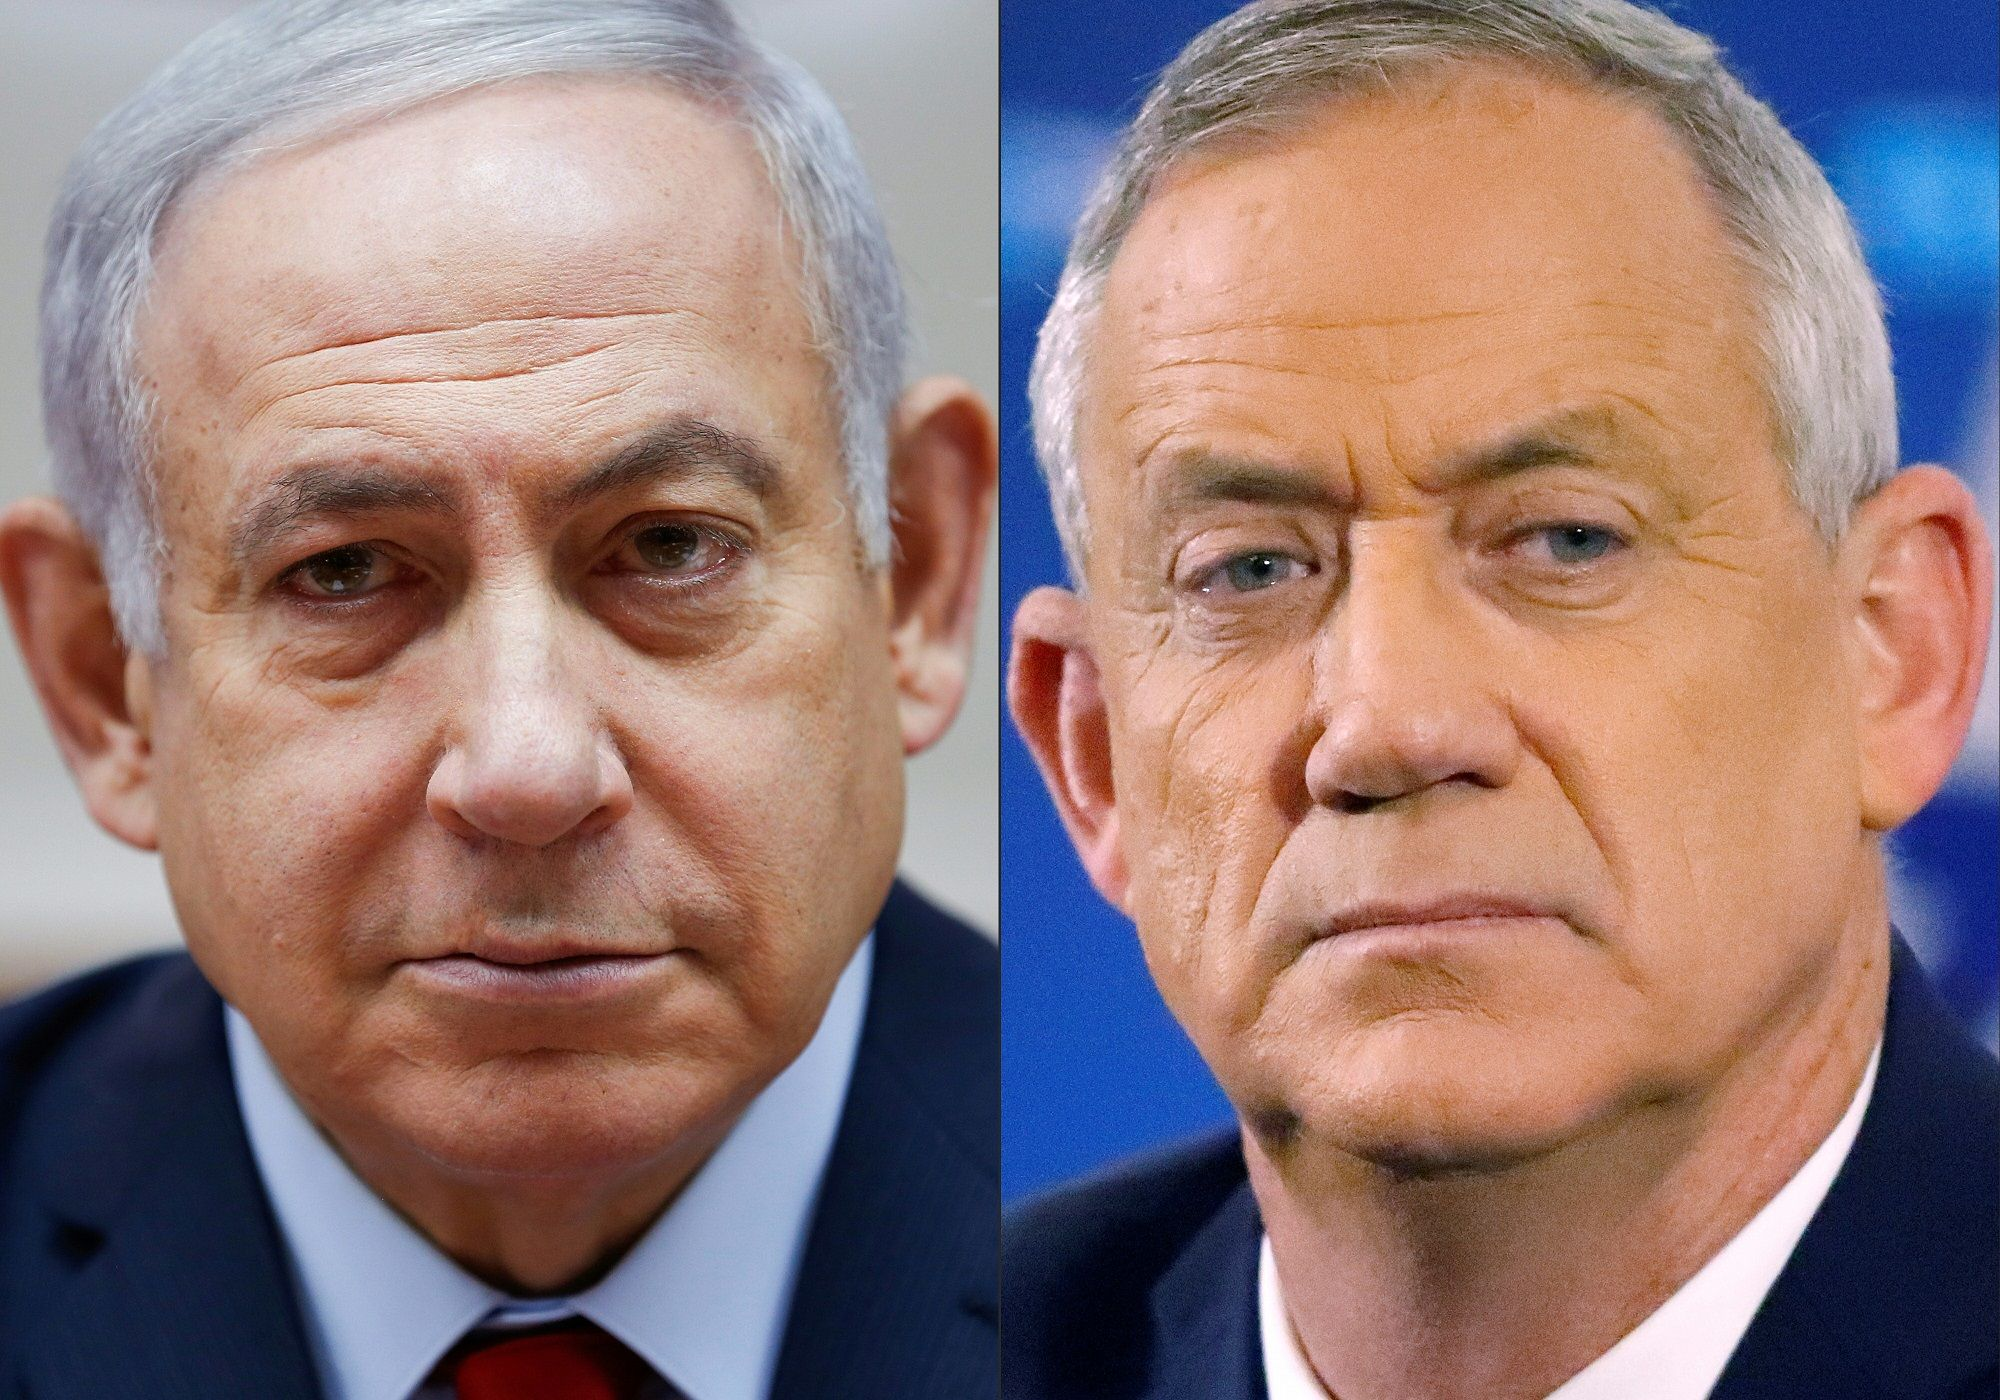 Report: Netanyahu claims rival readying to form minority gov't with Arab support